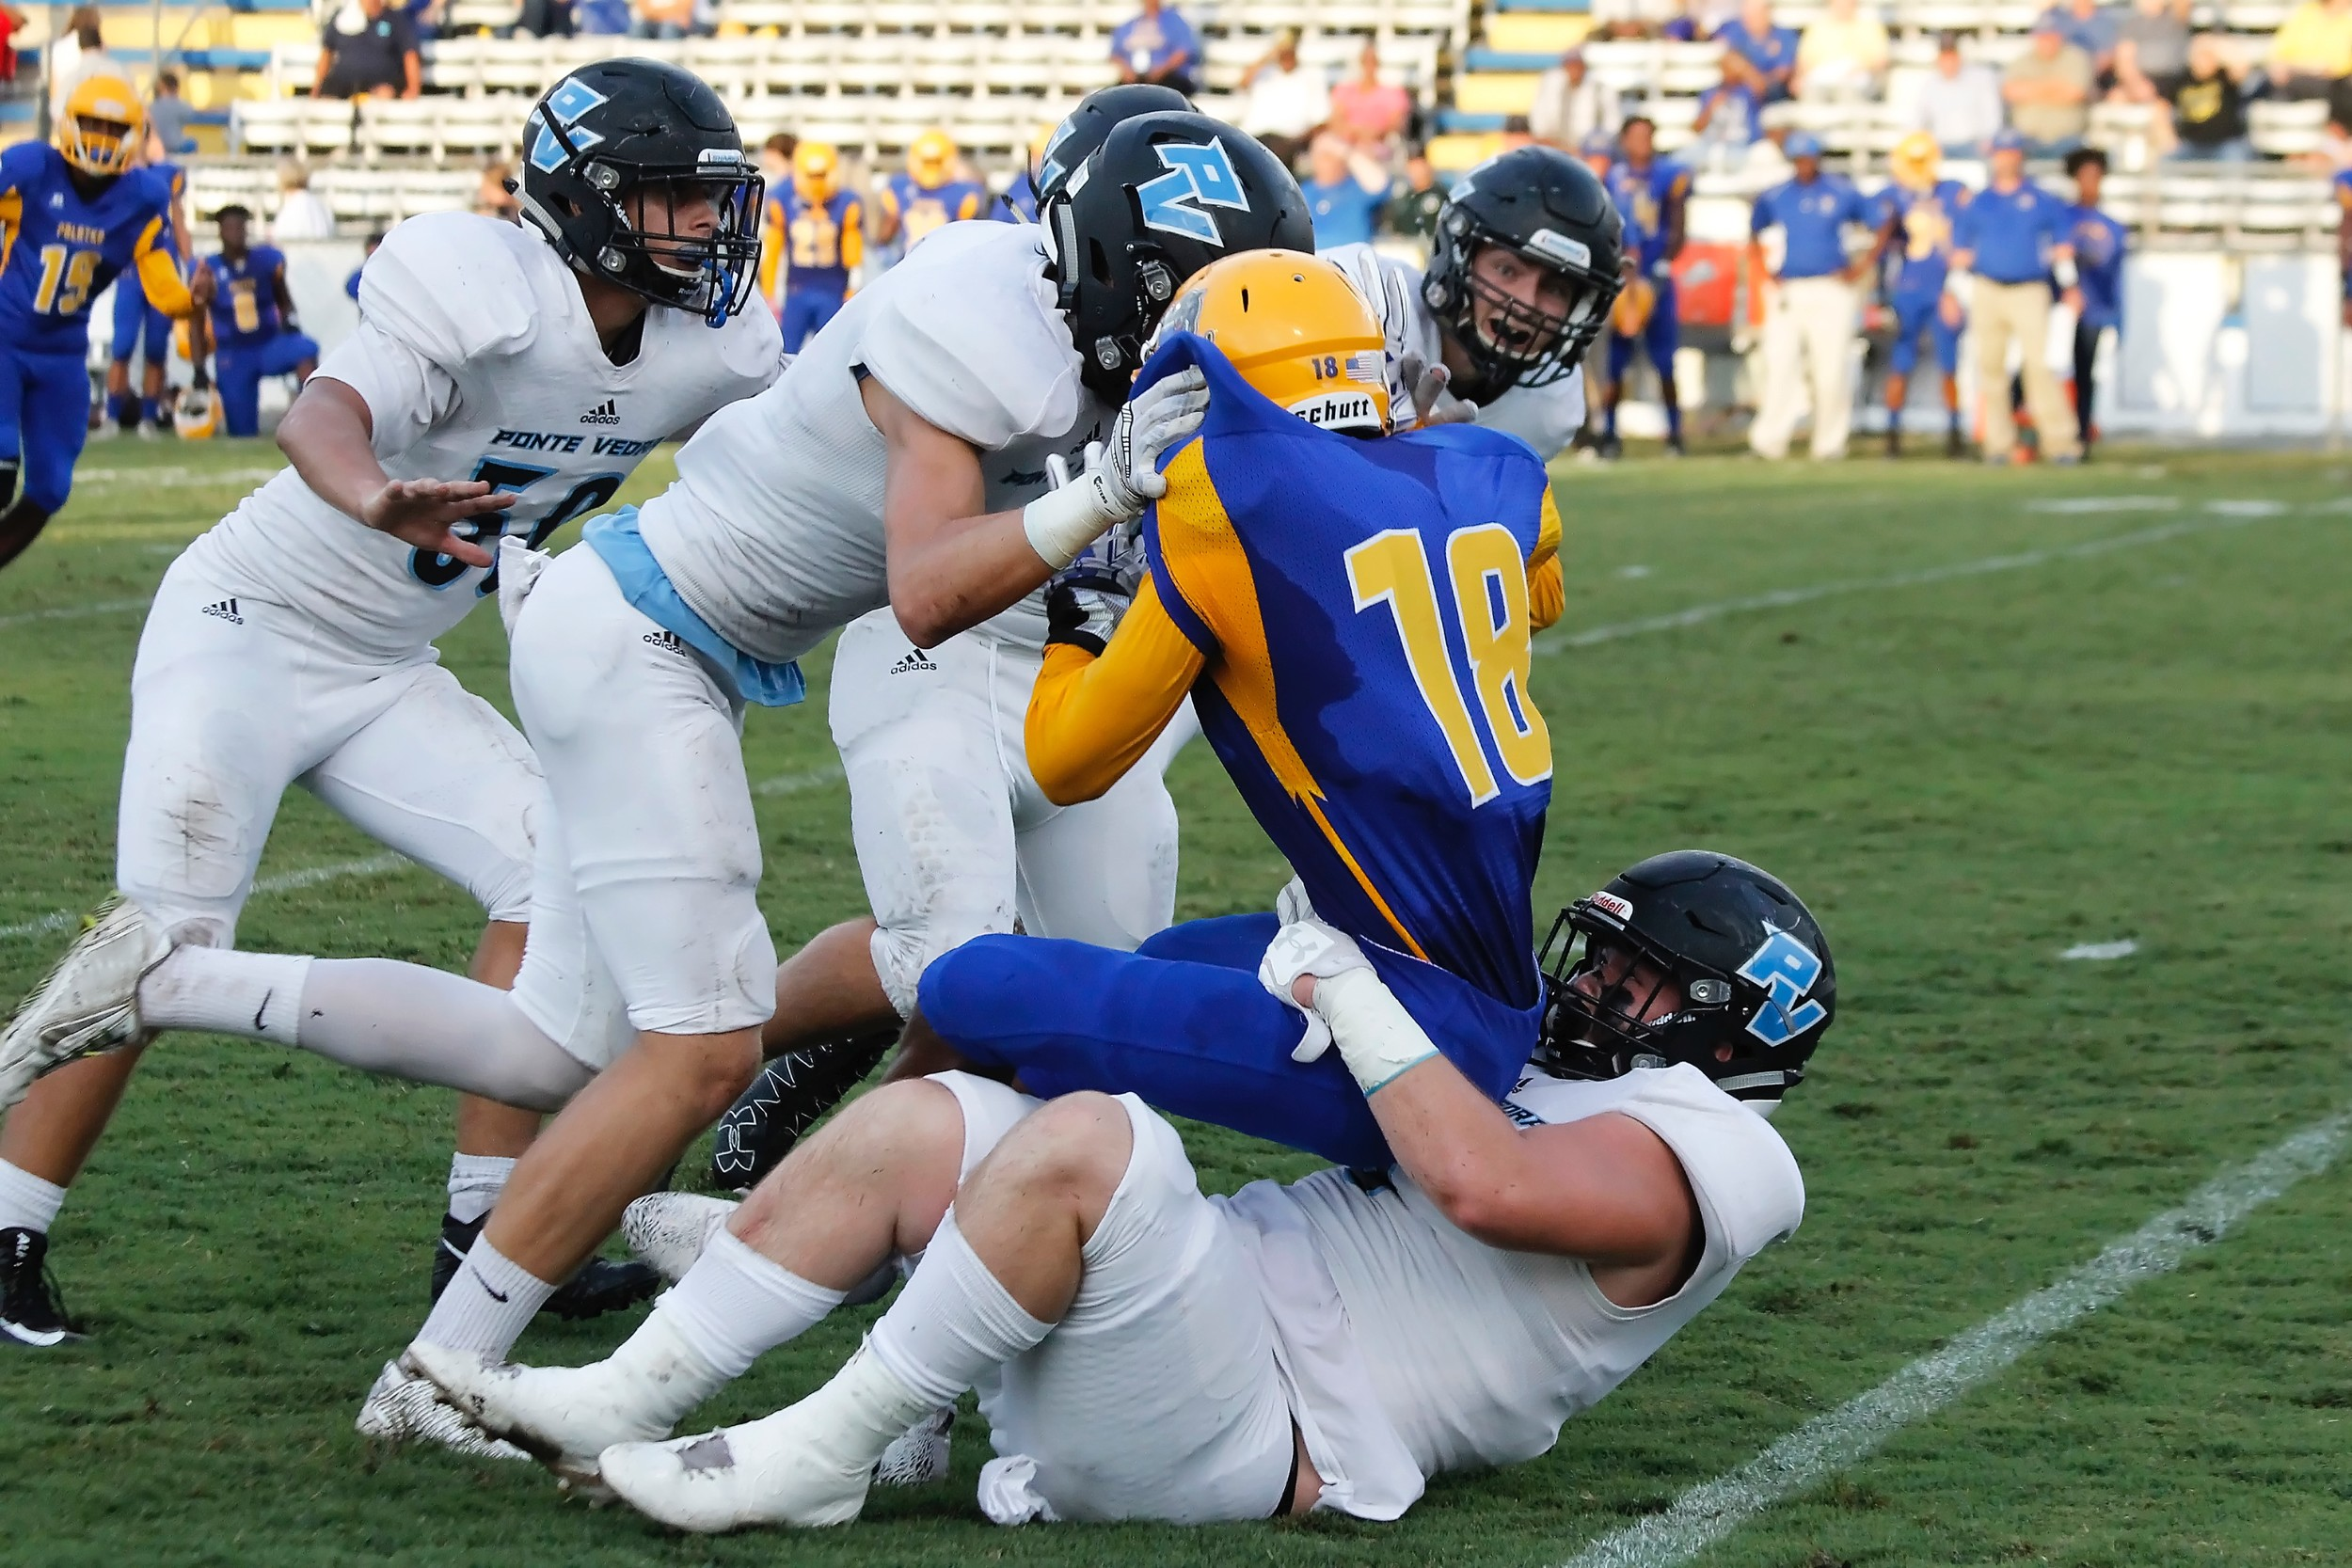 A host of Sharks with Gibson Pardue on the bottom bring down the Palatka ball carrier.